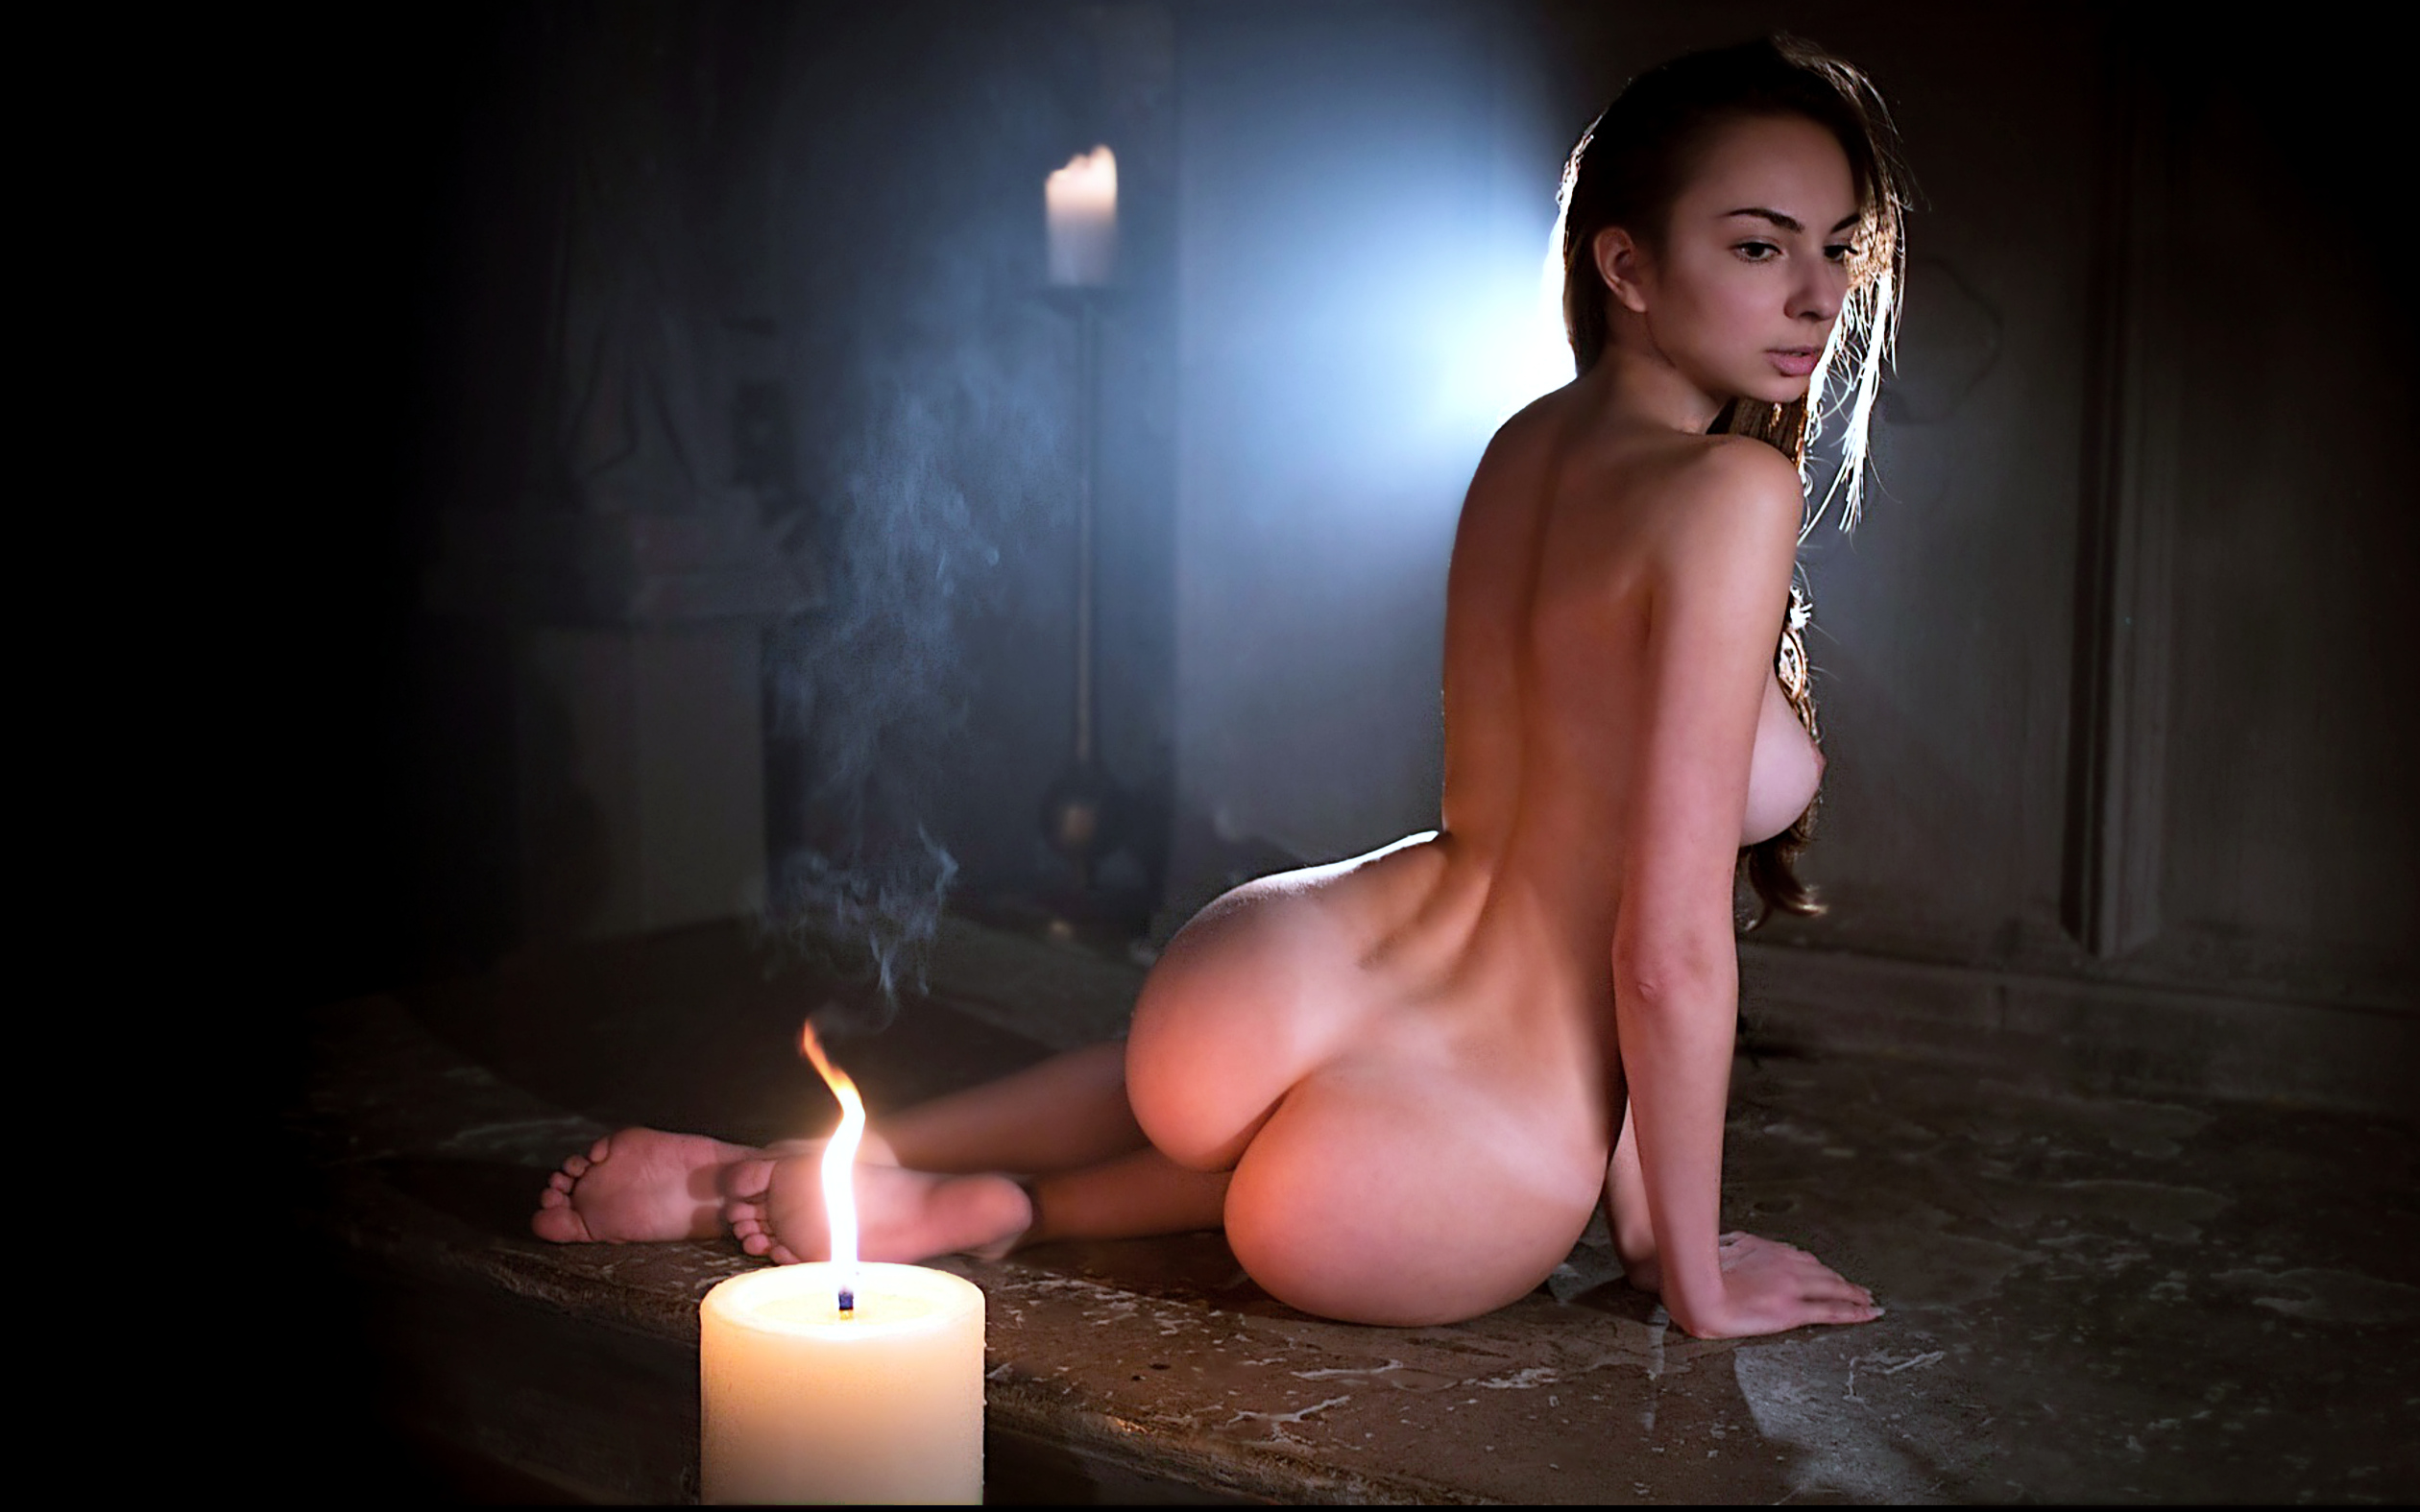 Hot naked ass with candle, free porn video my fetish